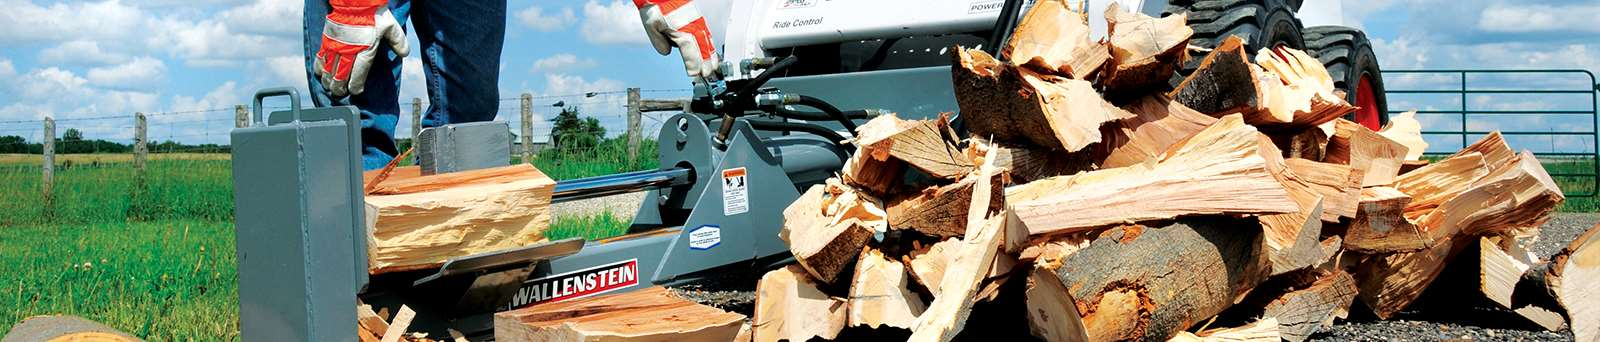 Log Splitters 2 - 1215x520 |